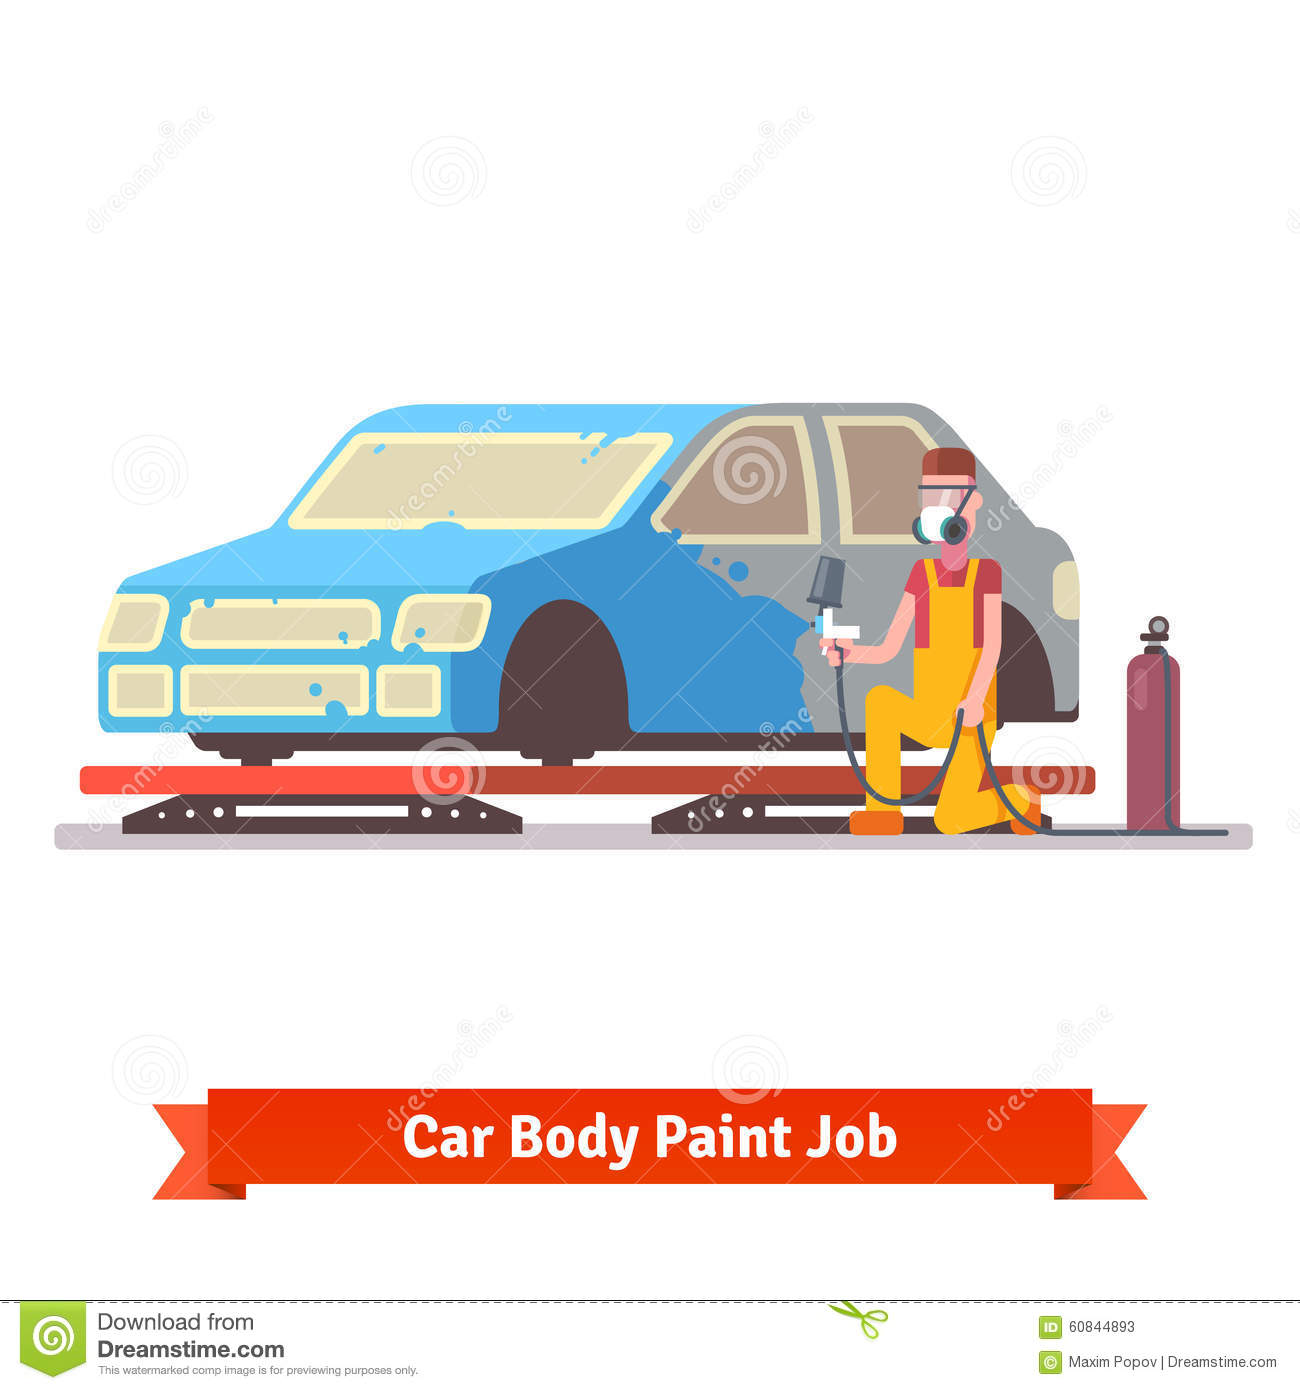 Car body paint job stock vector. Illustration of frame - 60844893